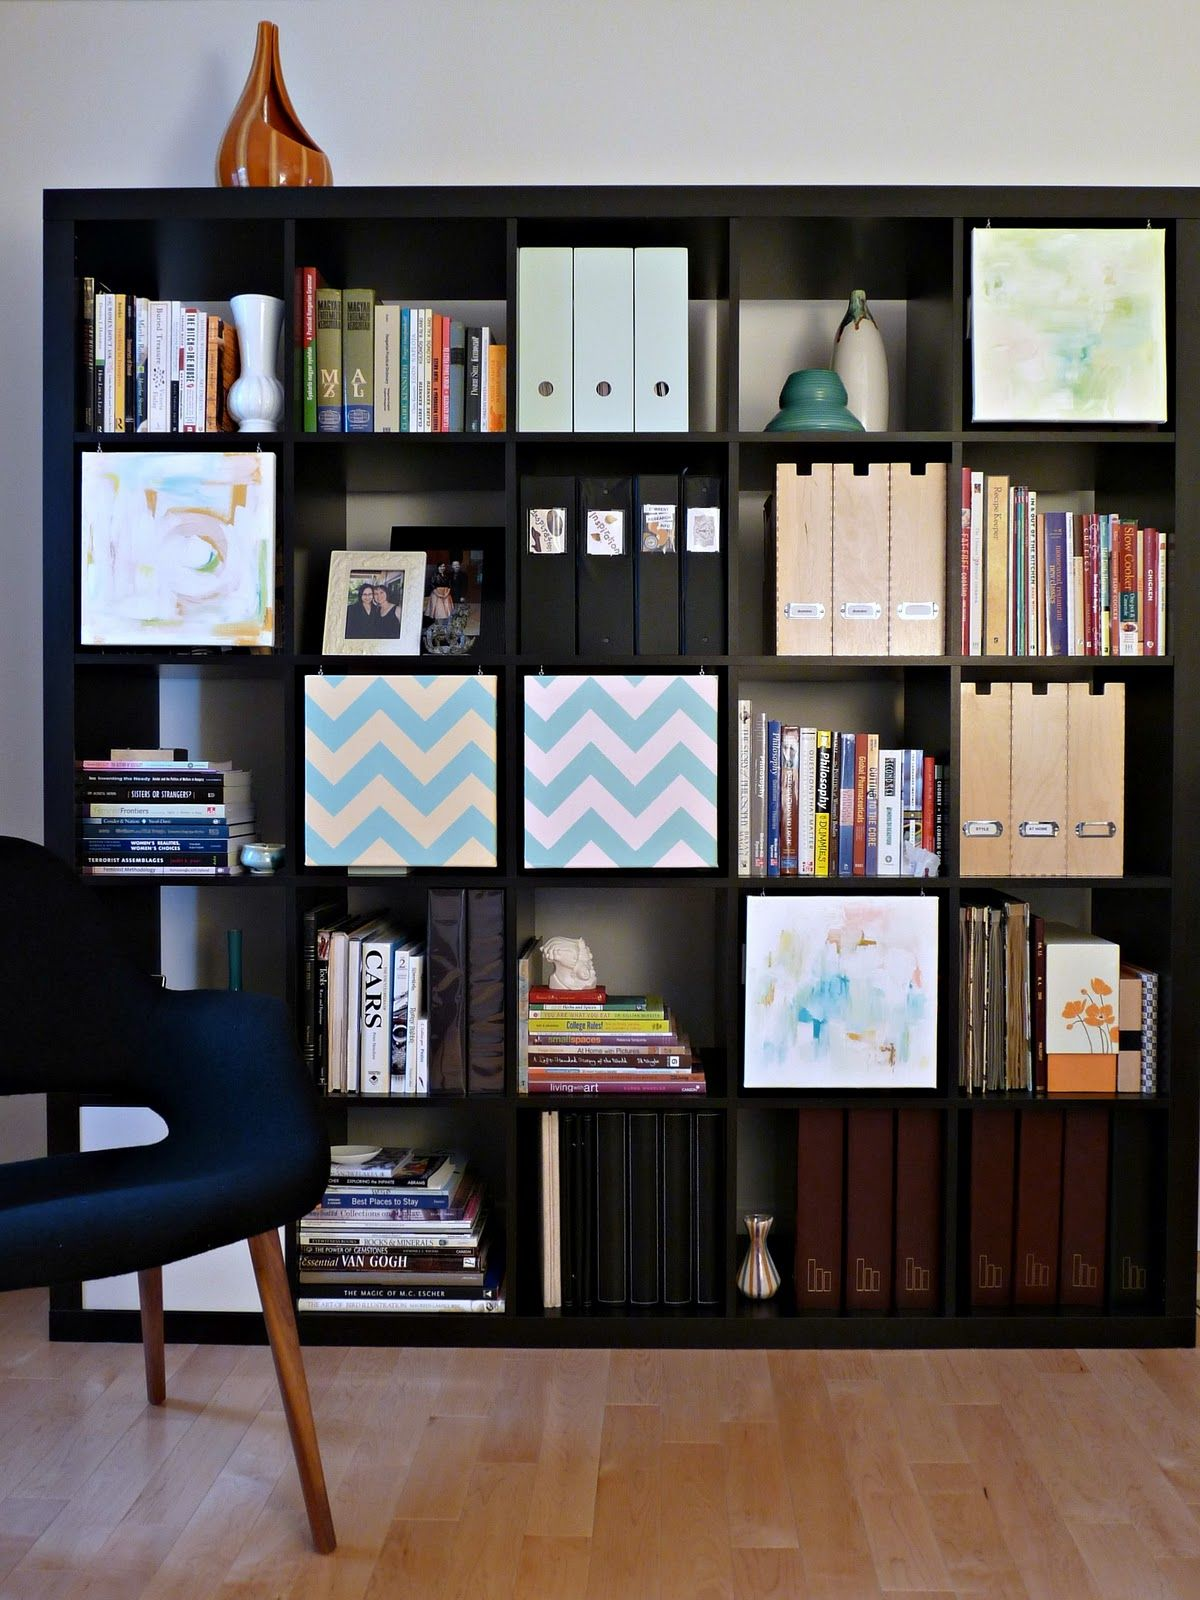 Hanging Painted Canvases To Hide Shelf Clutter Ive Got Wider Shelves